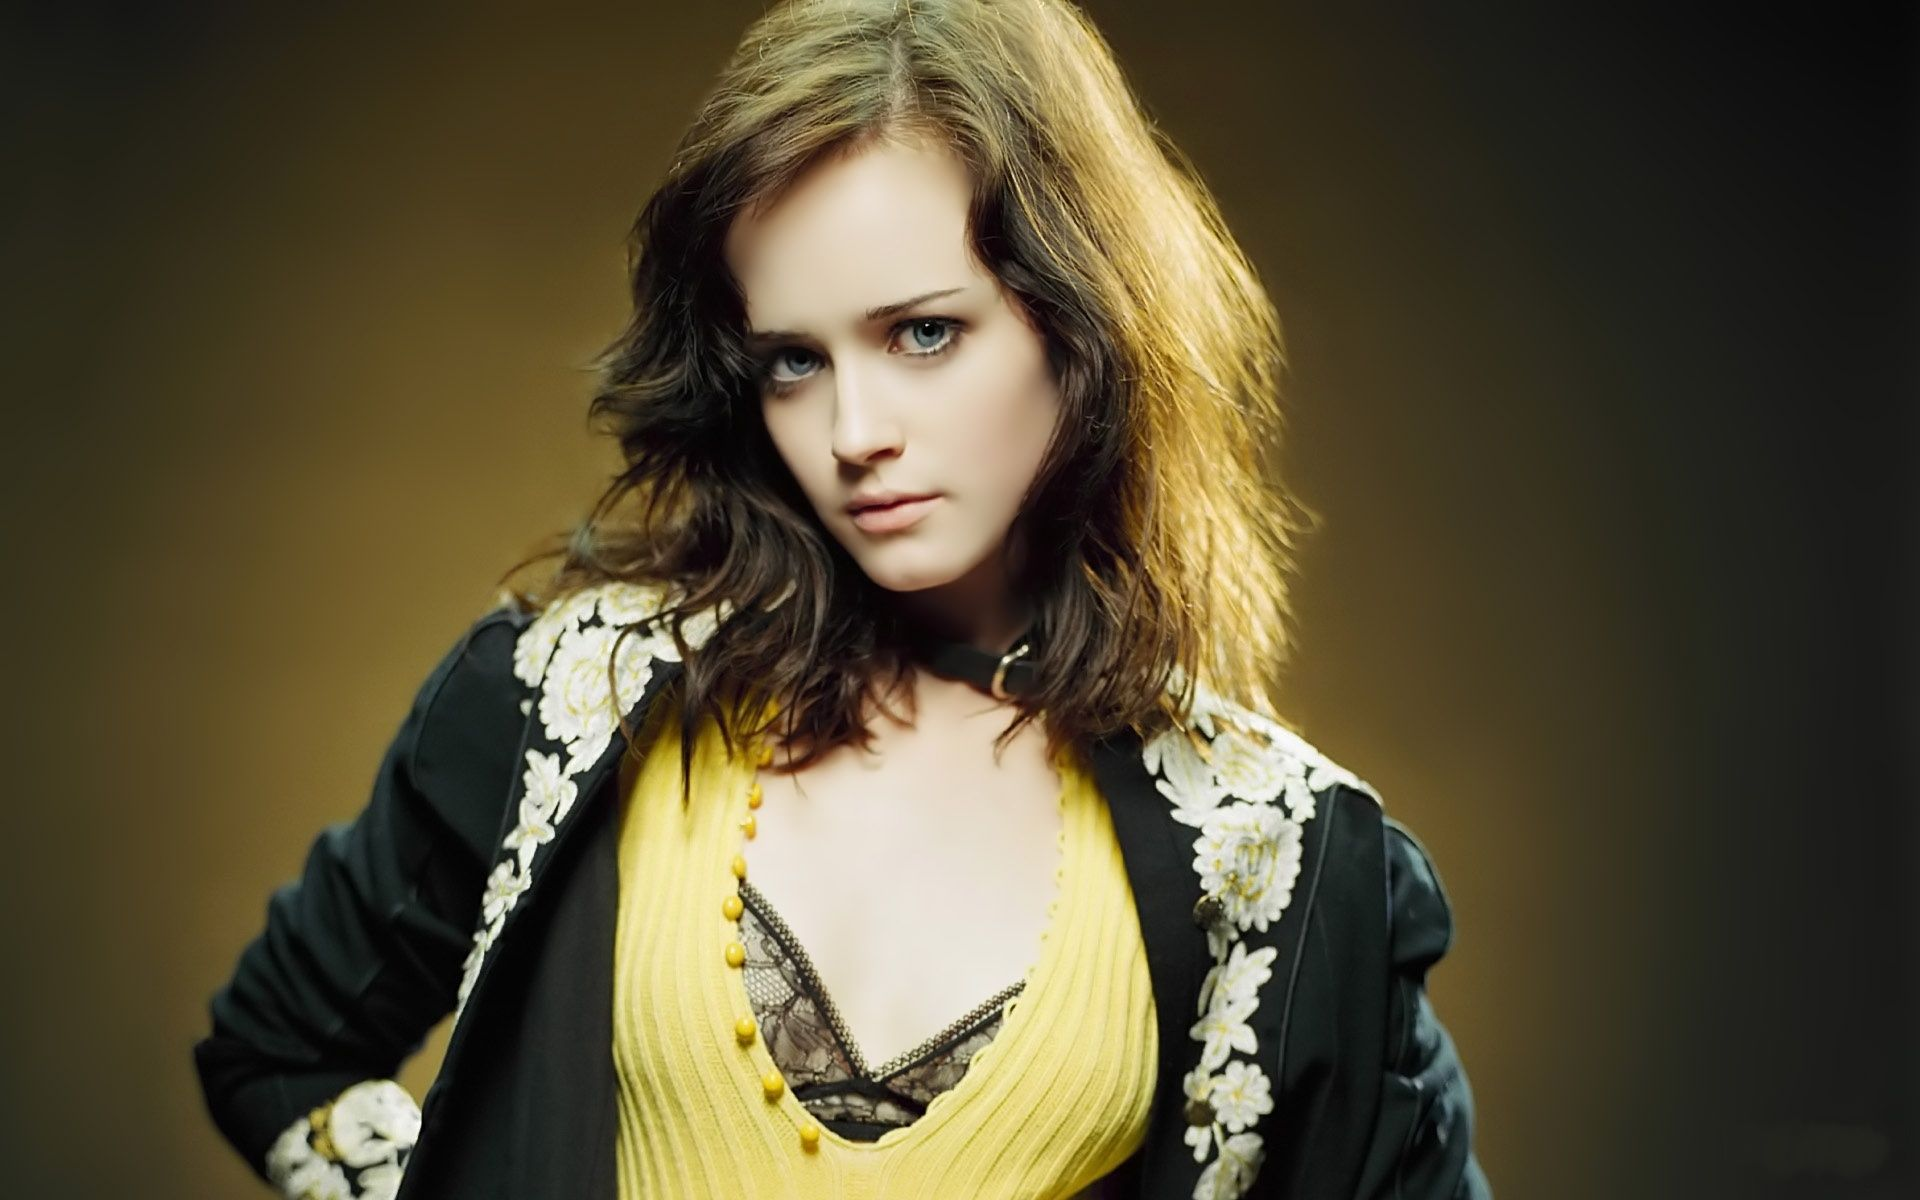 Most Beautiful Images Of Alexis Bledel Alexis Bledel Hot Hair Styles Worlds Beautiful Women